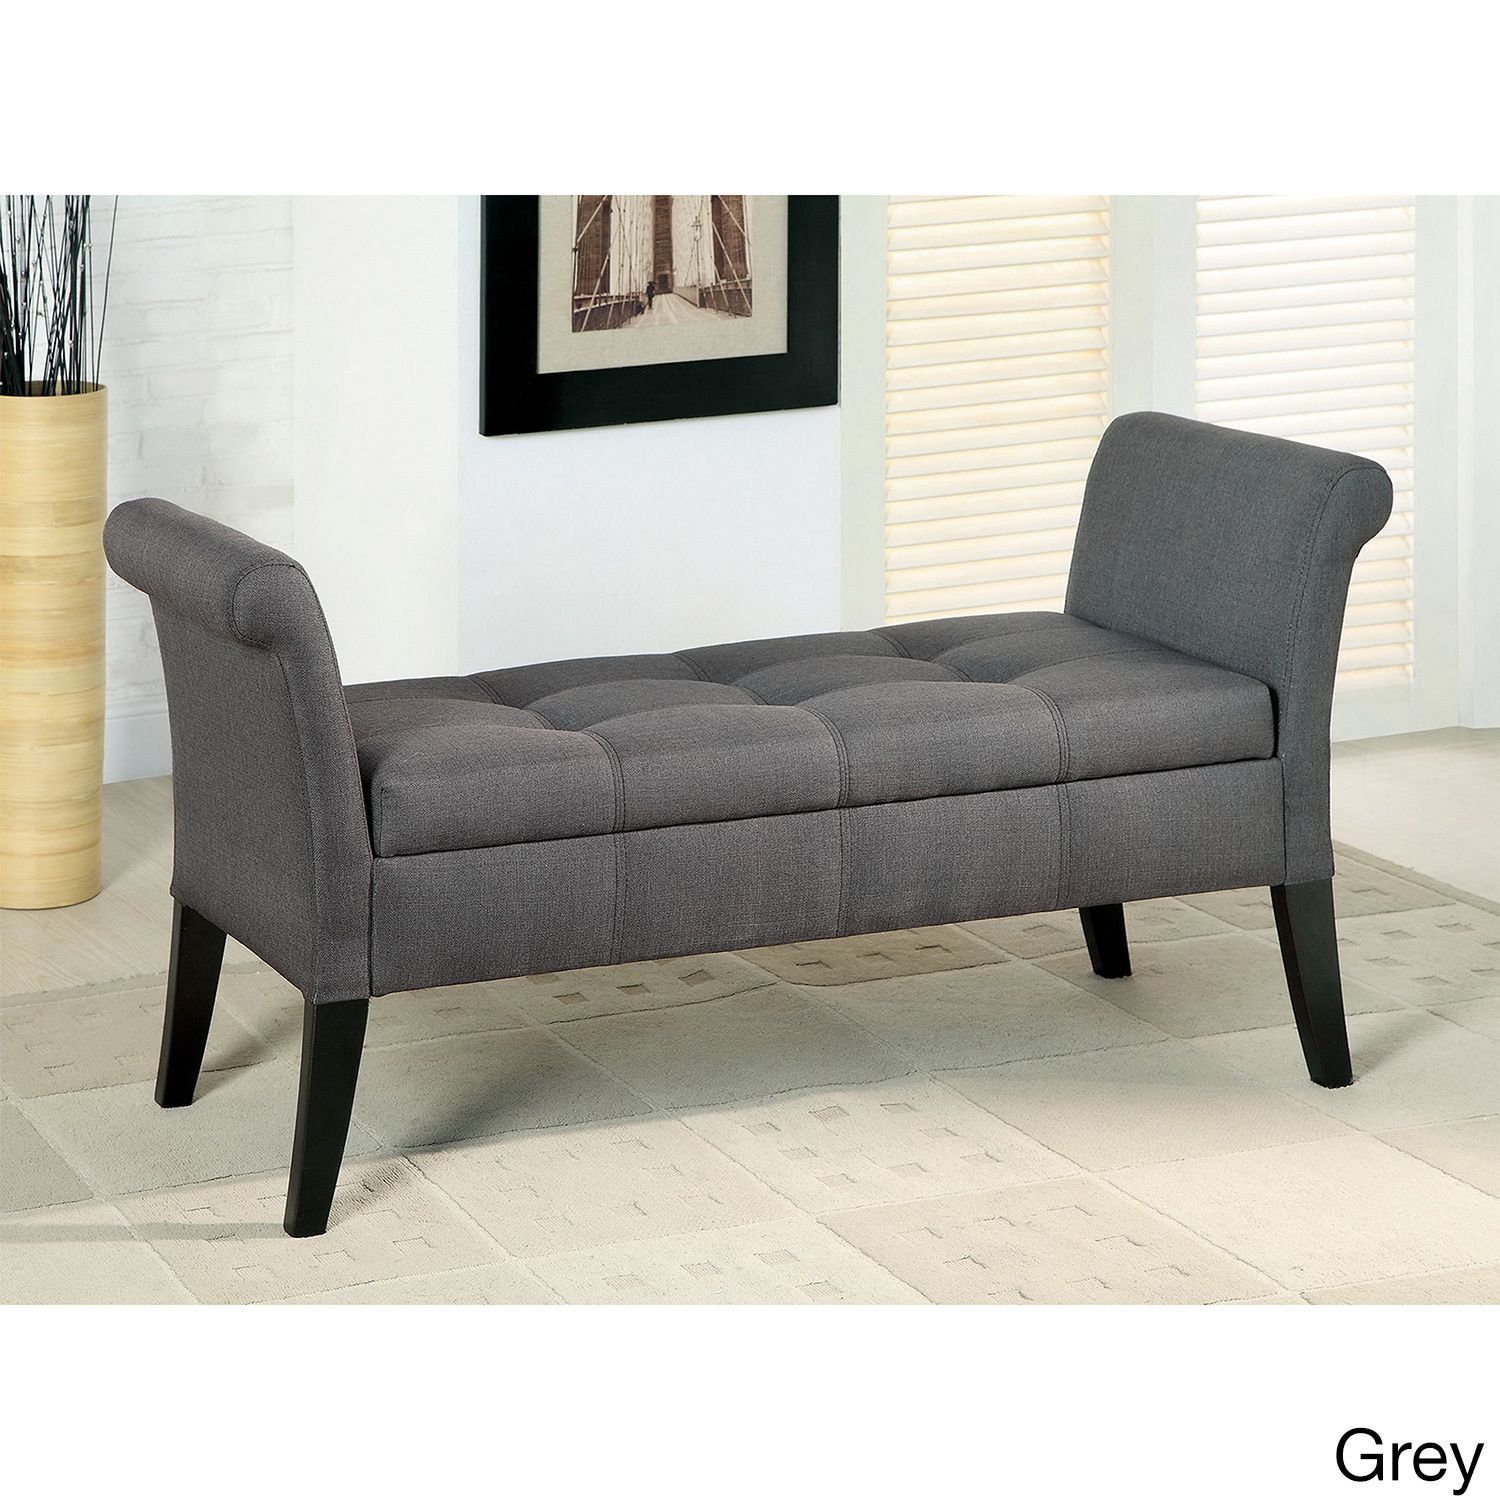 Furniture of America Dohshey Fabric Storage Accent Bench (Grey ...